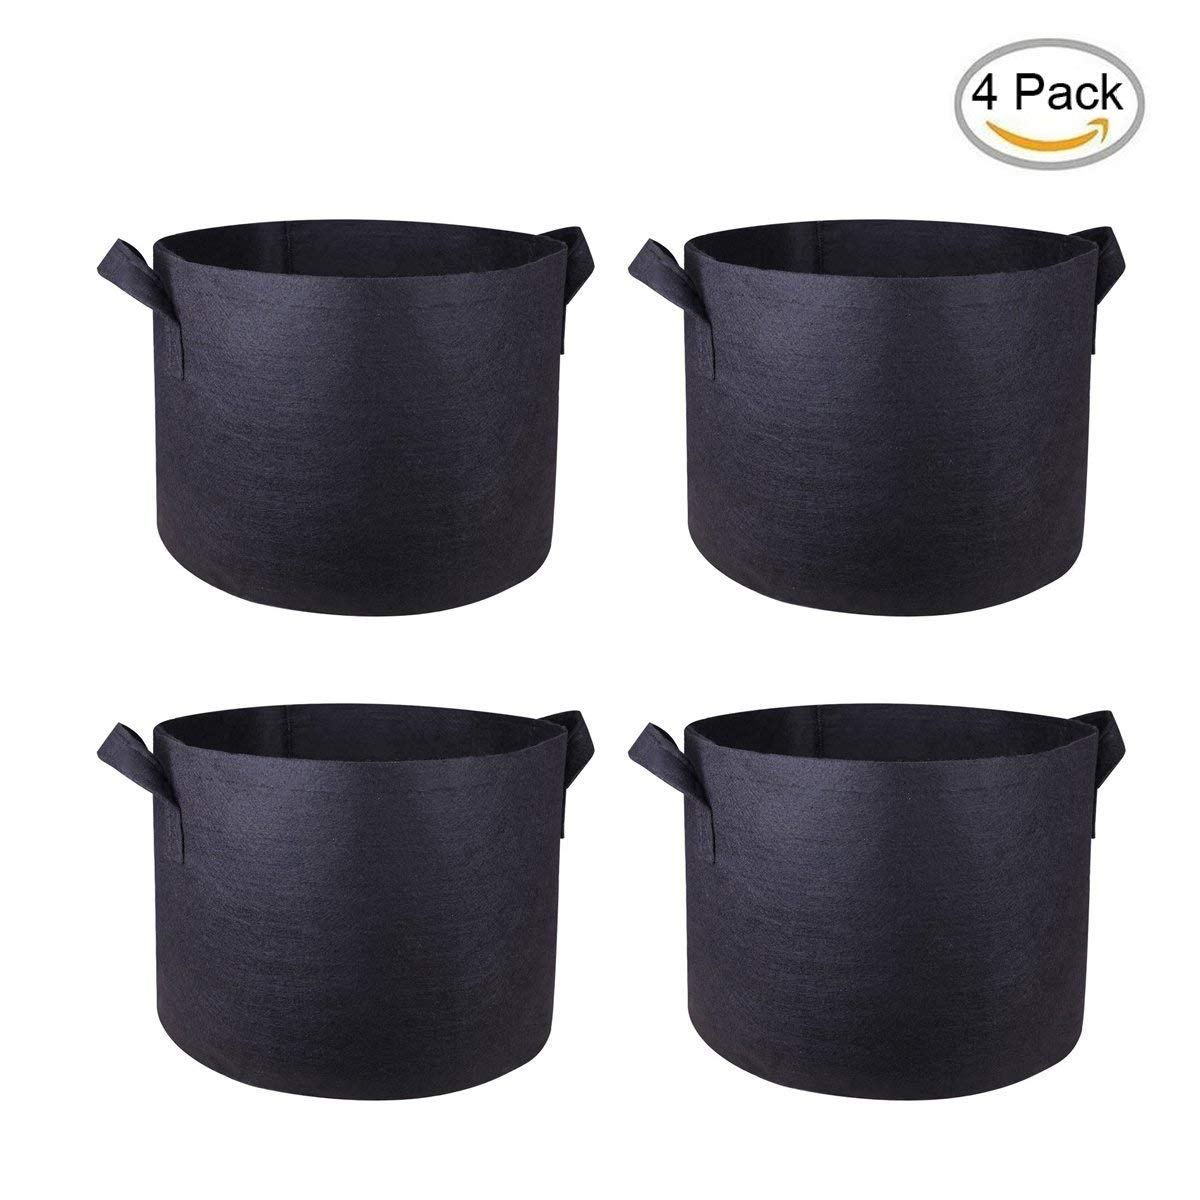 SQZW 7 Gallon Plant Grow Bags/Aeration Fabric Pots with Handles (4 Pack, Black)